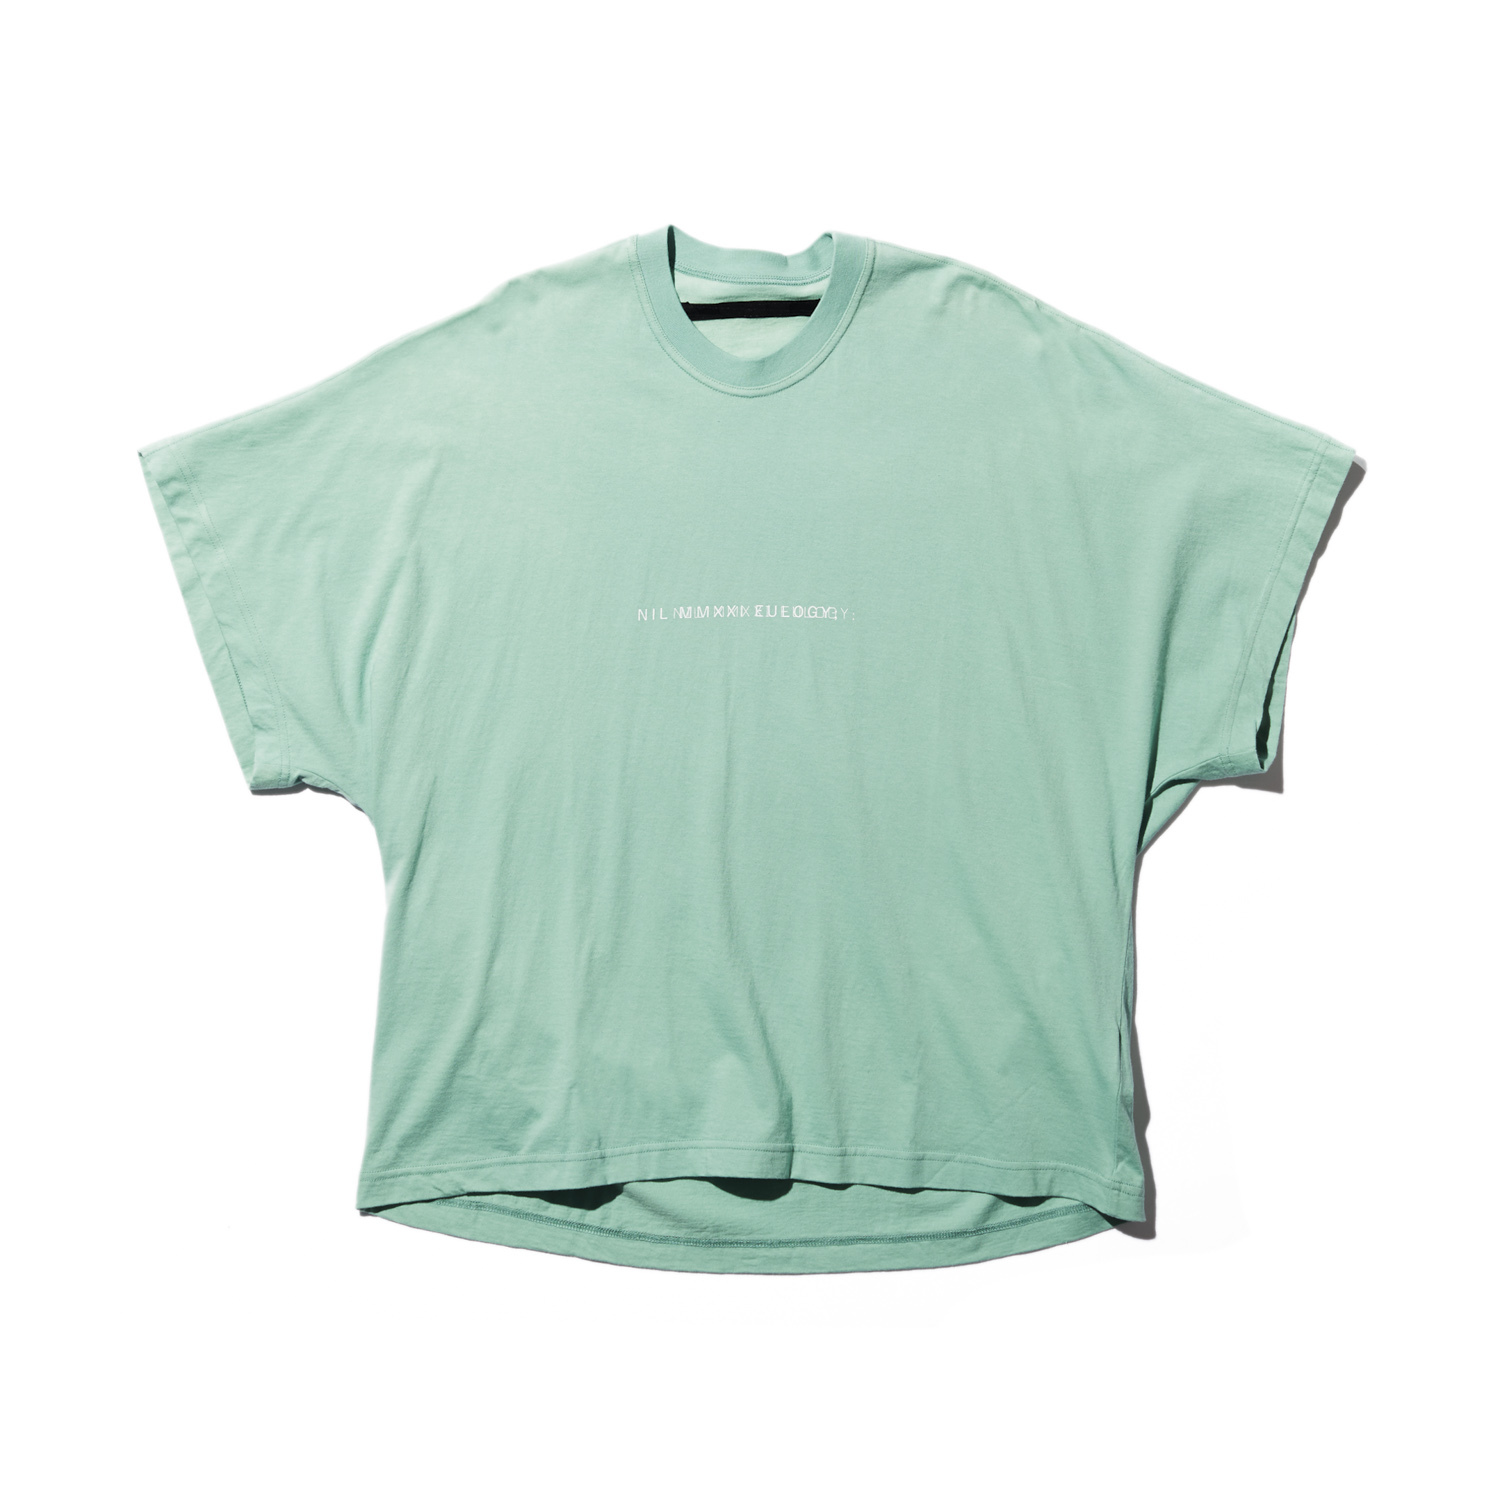 740CPM2-TURQUOISE / NILøS プリント Tシャツ ver.2